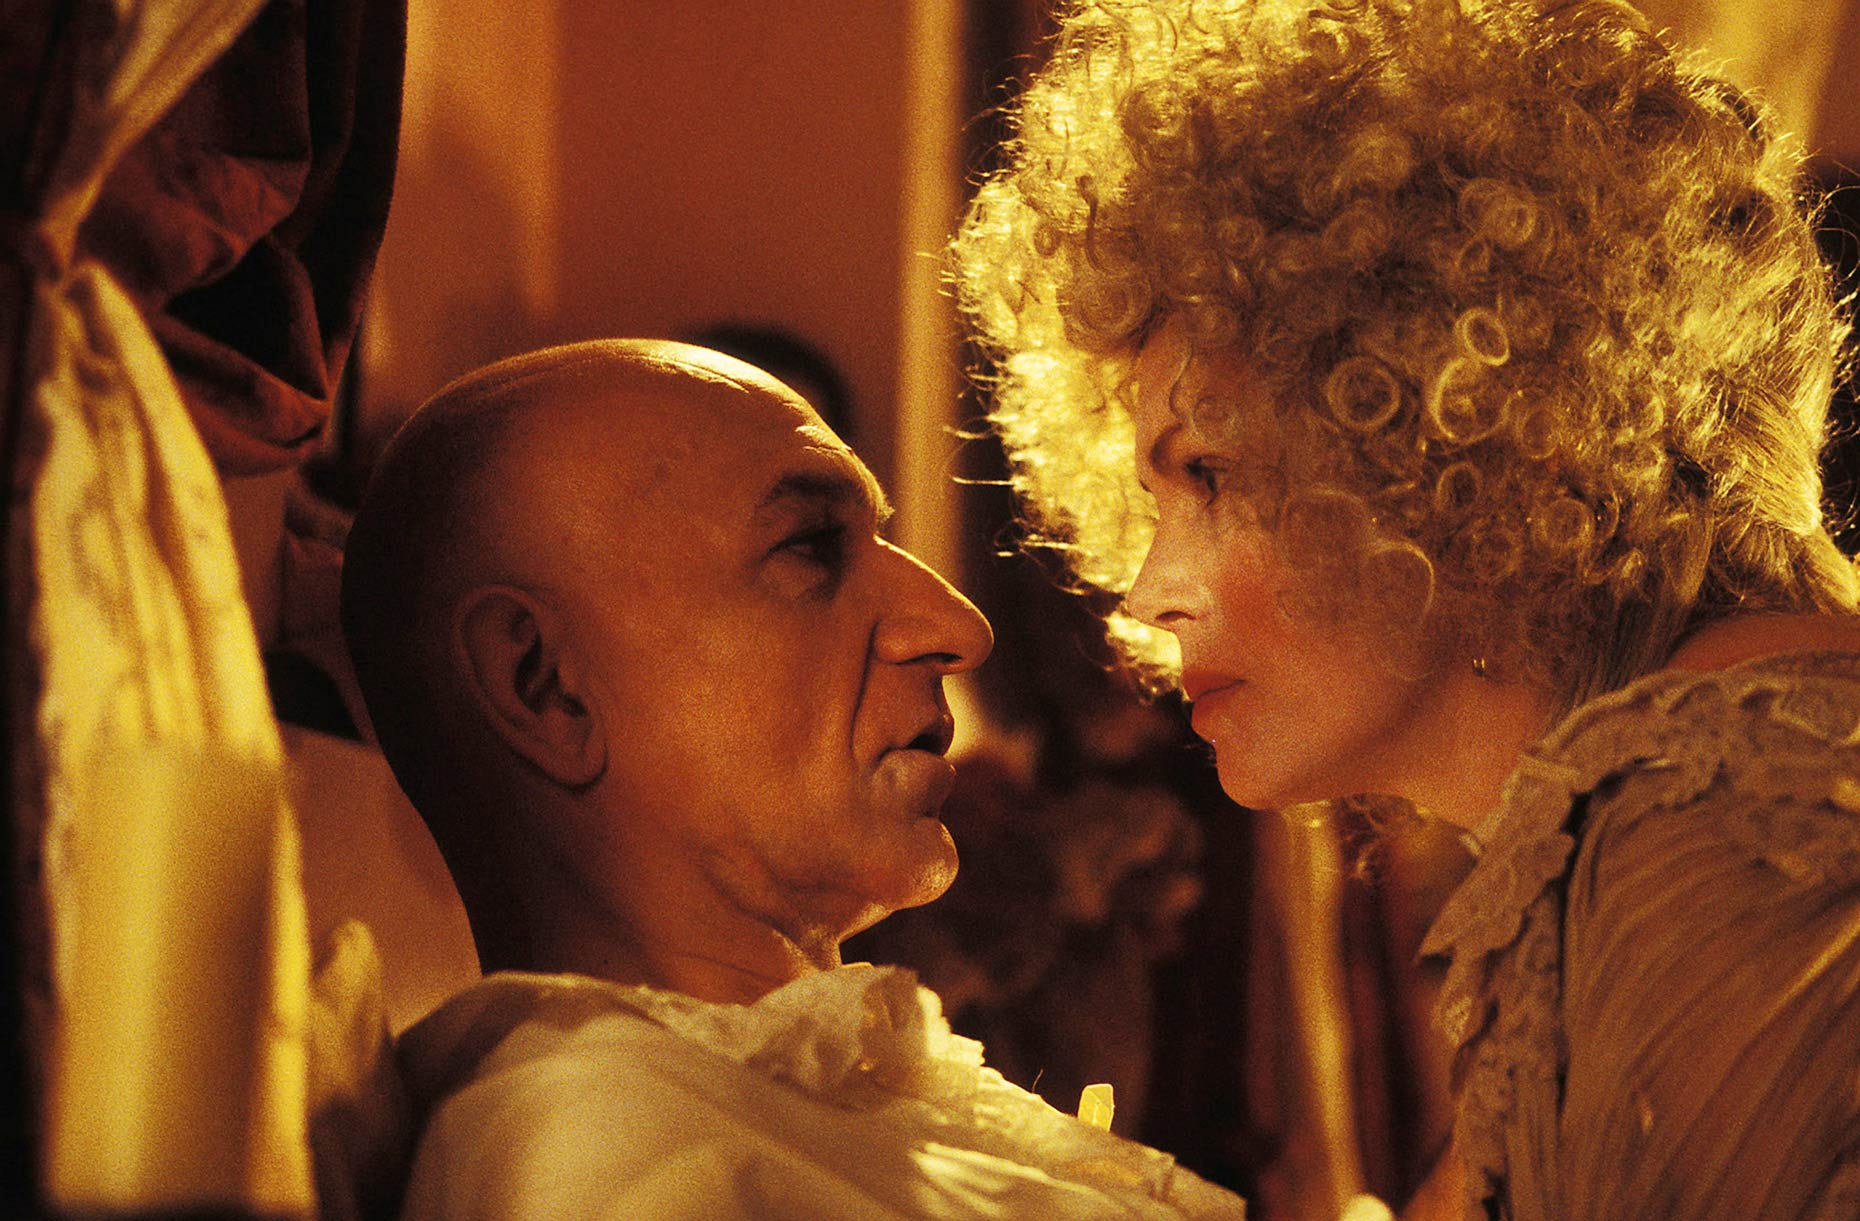 THE TALE OF SWEENEY TODD : Ben Kingsley and Joanna Lumley